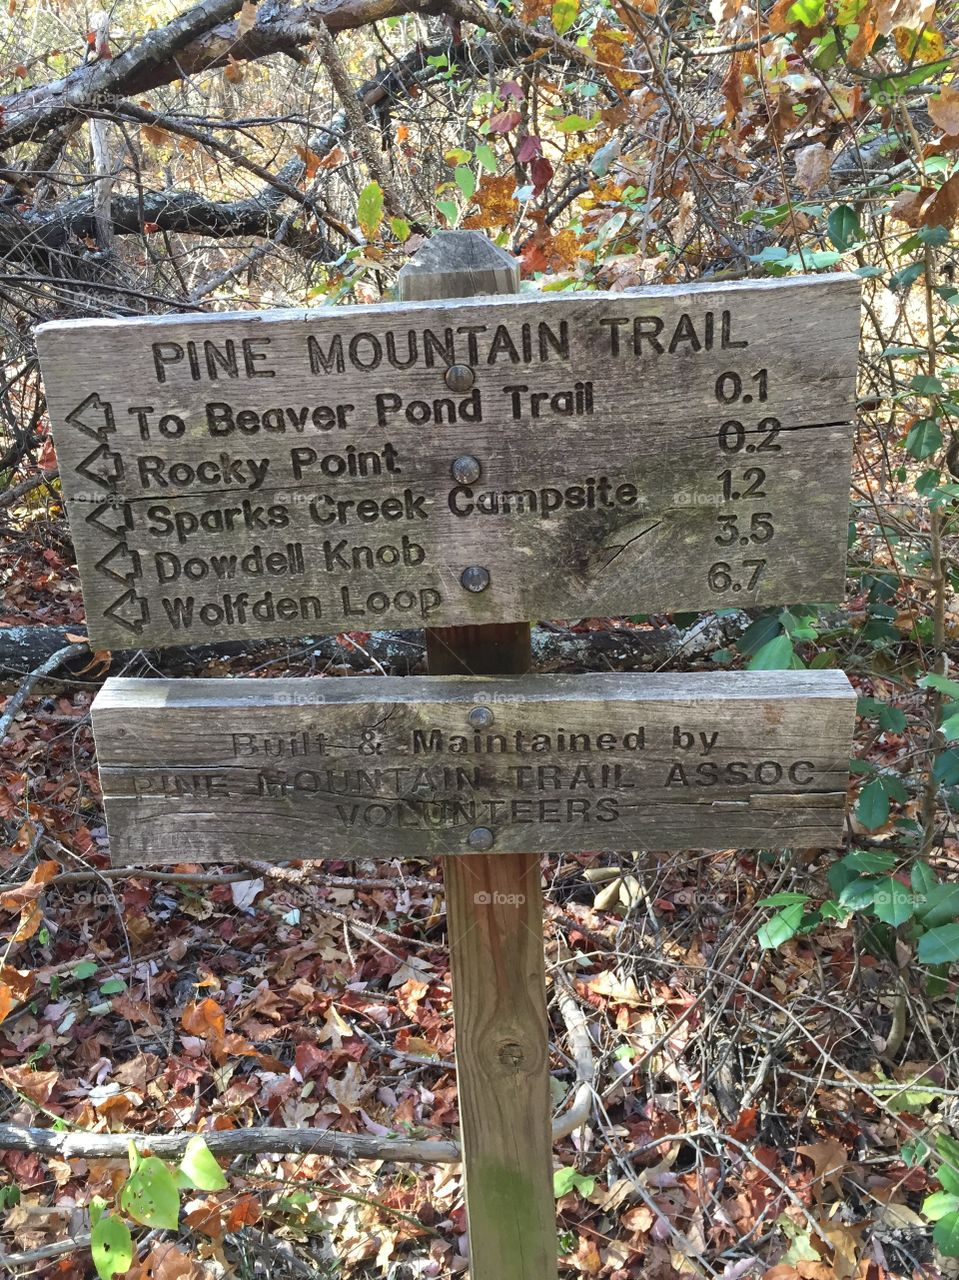 Old wooden trail sign with directions and what miles are to each destination, placed in the woods at a National Park in Georgia.